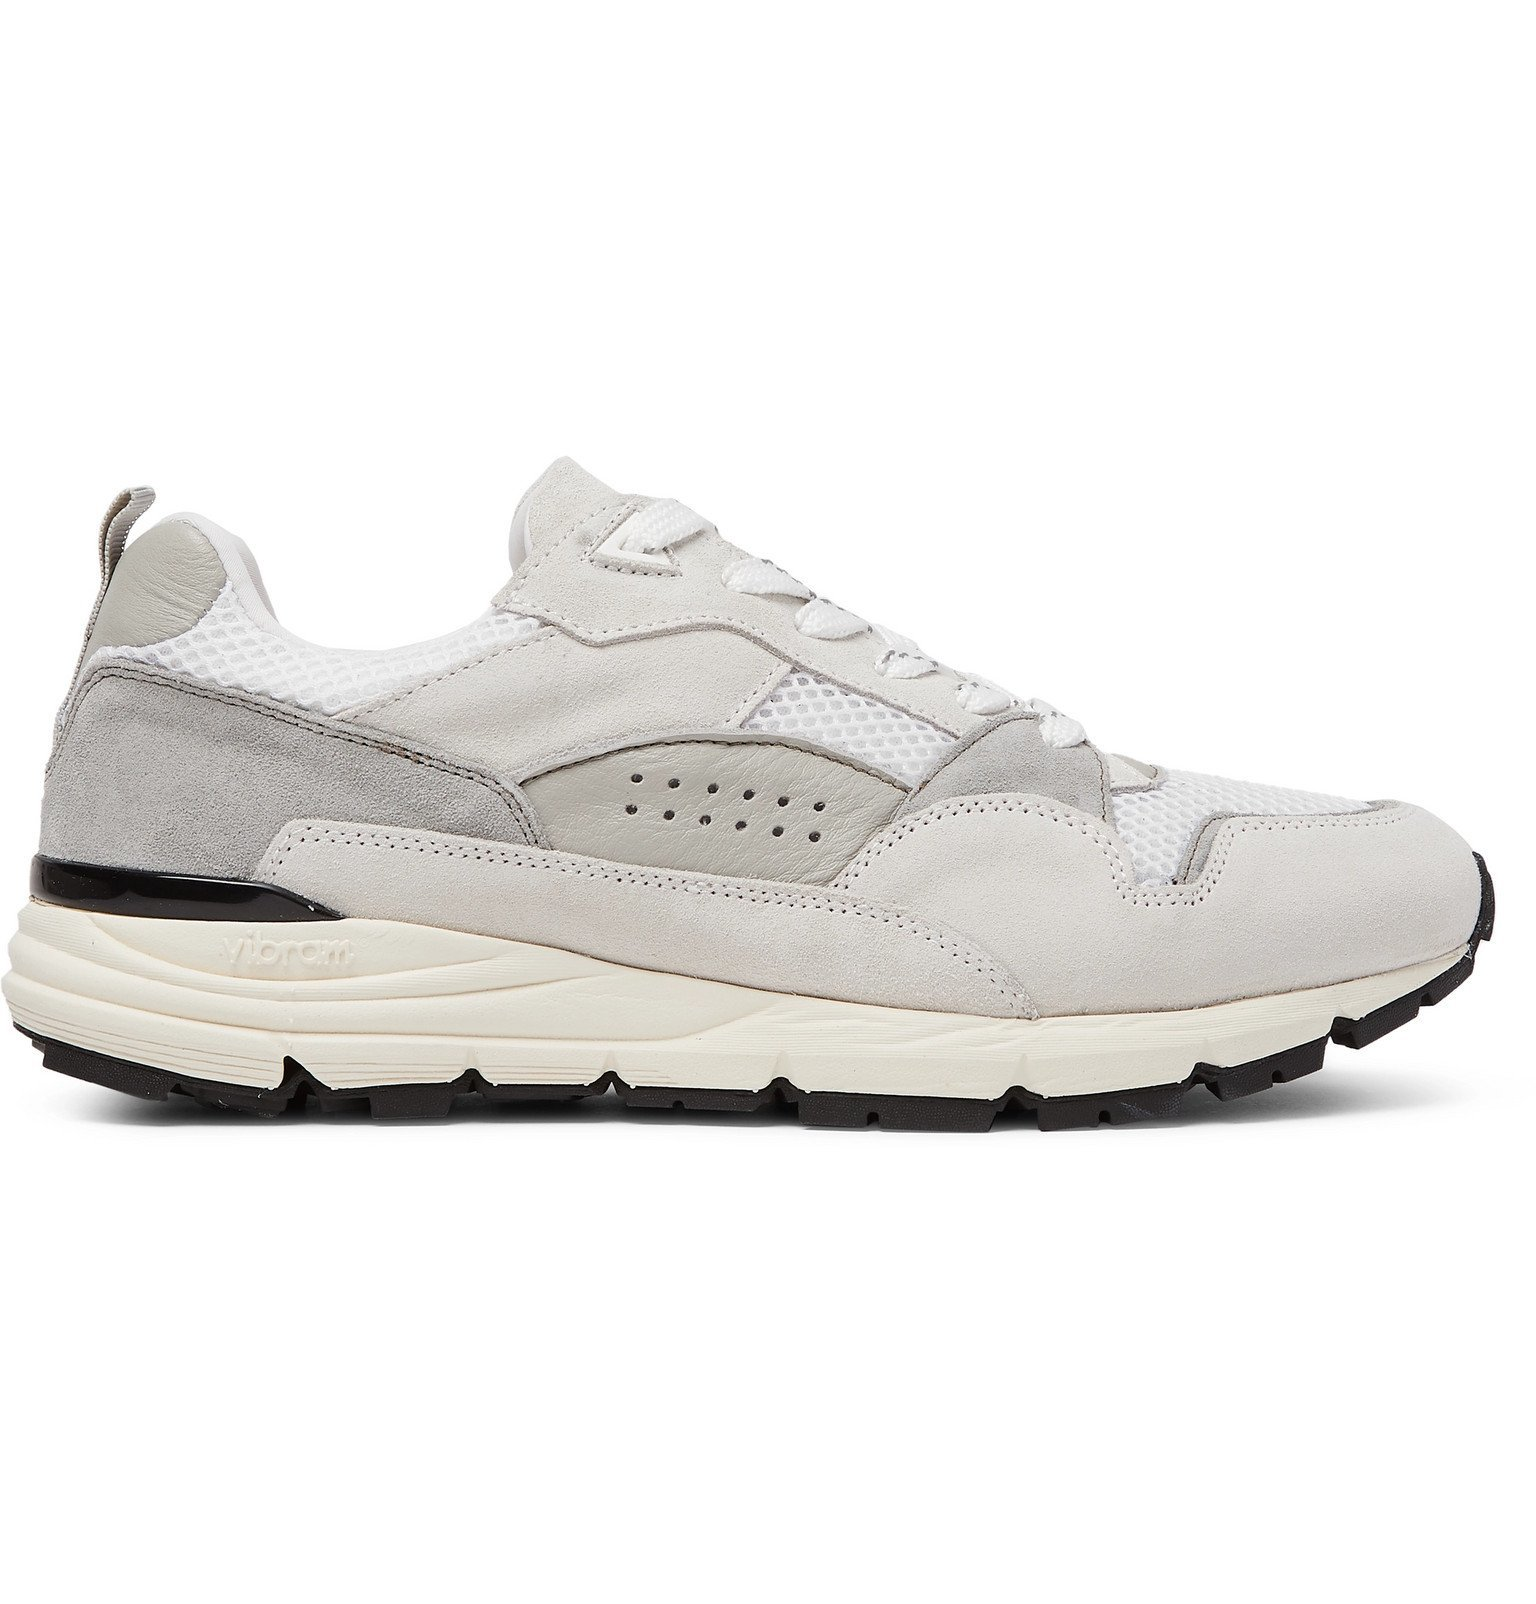 Officine Generale - Doug Mesh, Suede and Leather Sneakers - White